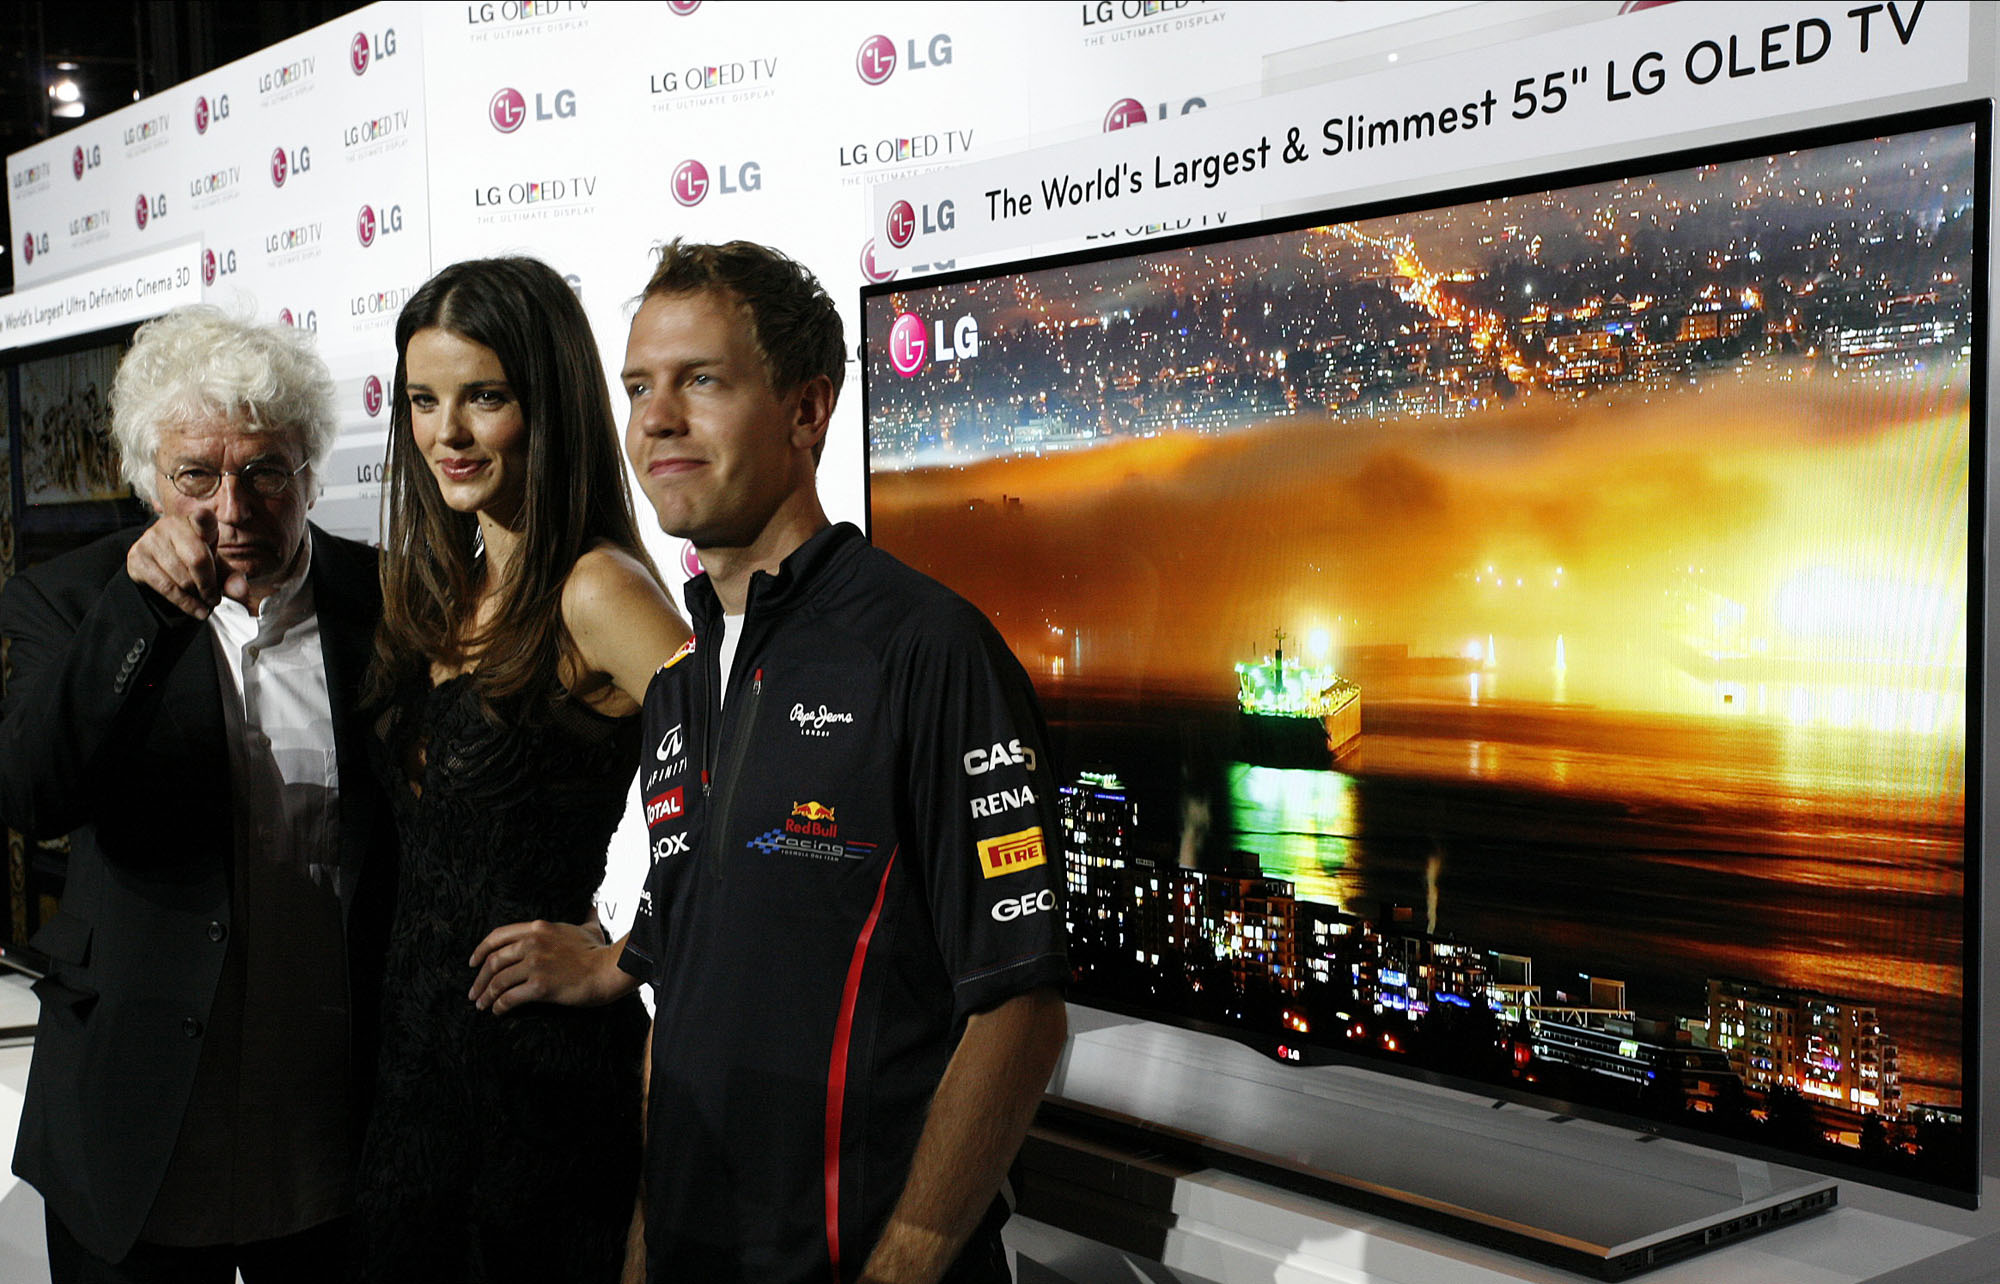 Film director Jean-Jacques Annaud, model Gemma Sanderson and F1 Champion Sebastian Vettel pose in front of LG's new 55-inch OLED TV in Monaco.